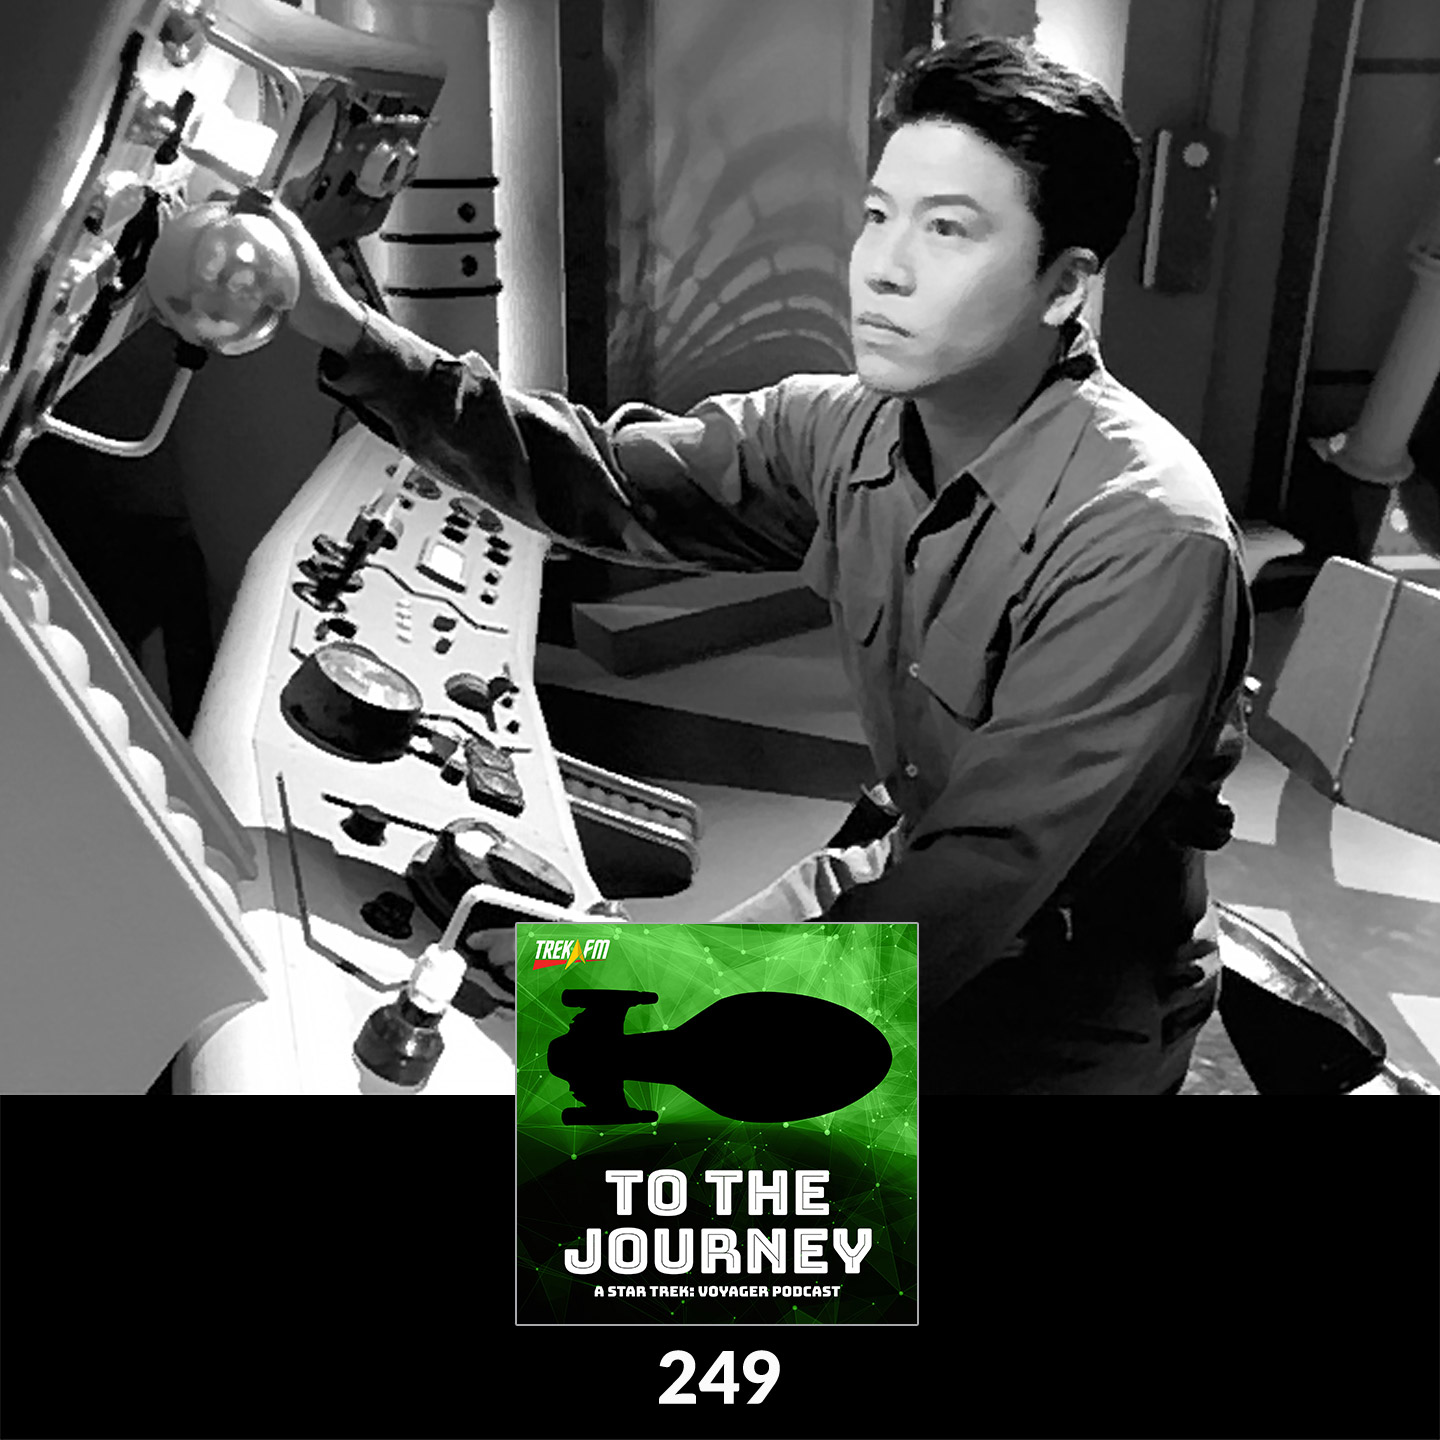 To The Journey 249: Nope, You're Buster Kinkaid - Desert Island Episodes - Voyager Season 5.